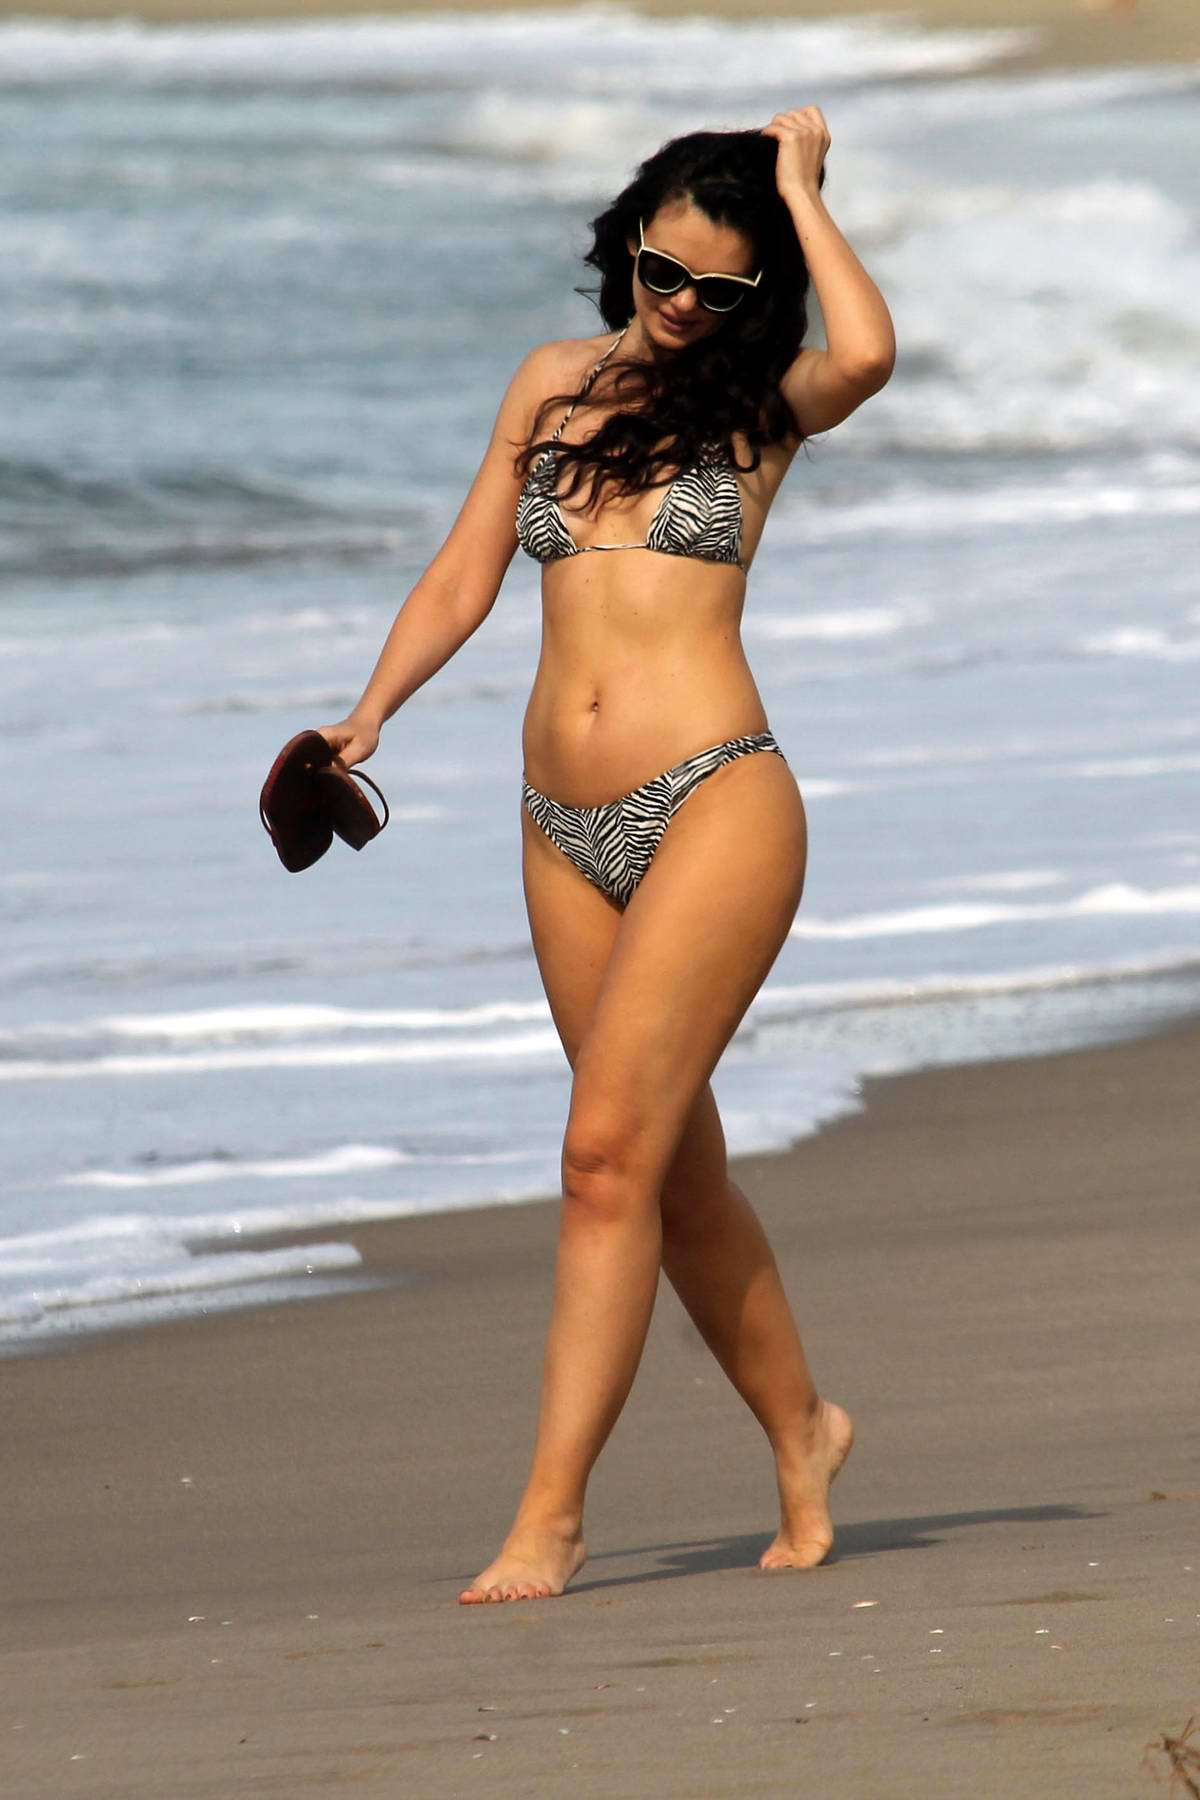 Natasha Blasick enjoys a stroll on the beach wearing a bikini in Malibu, California